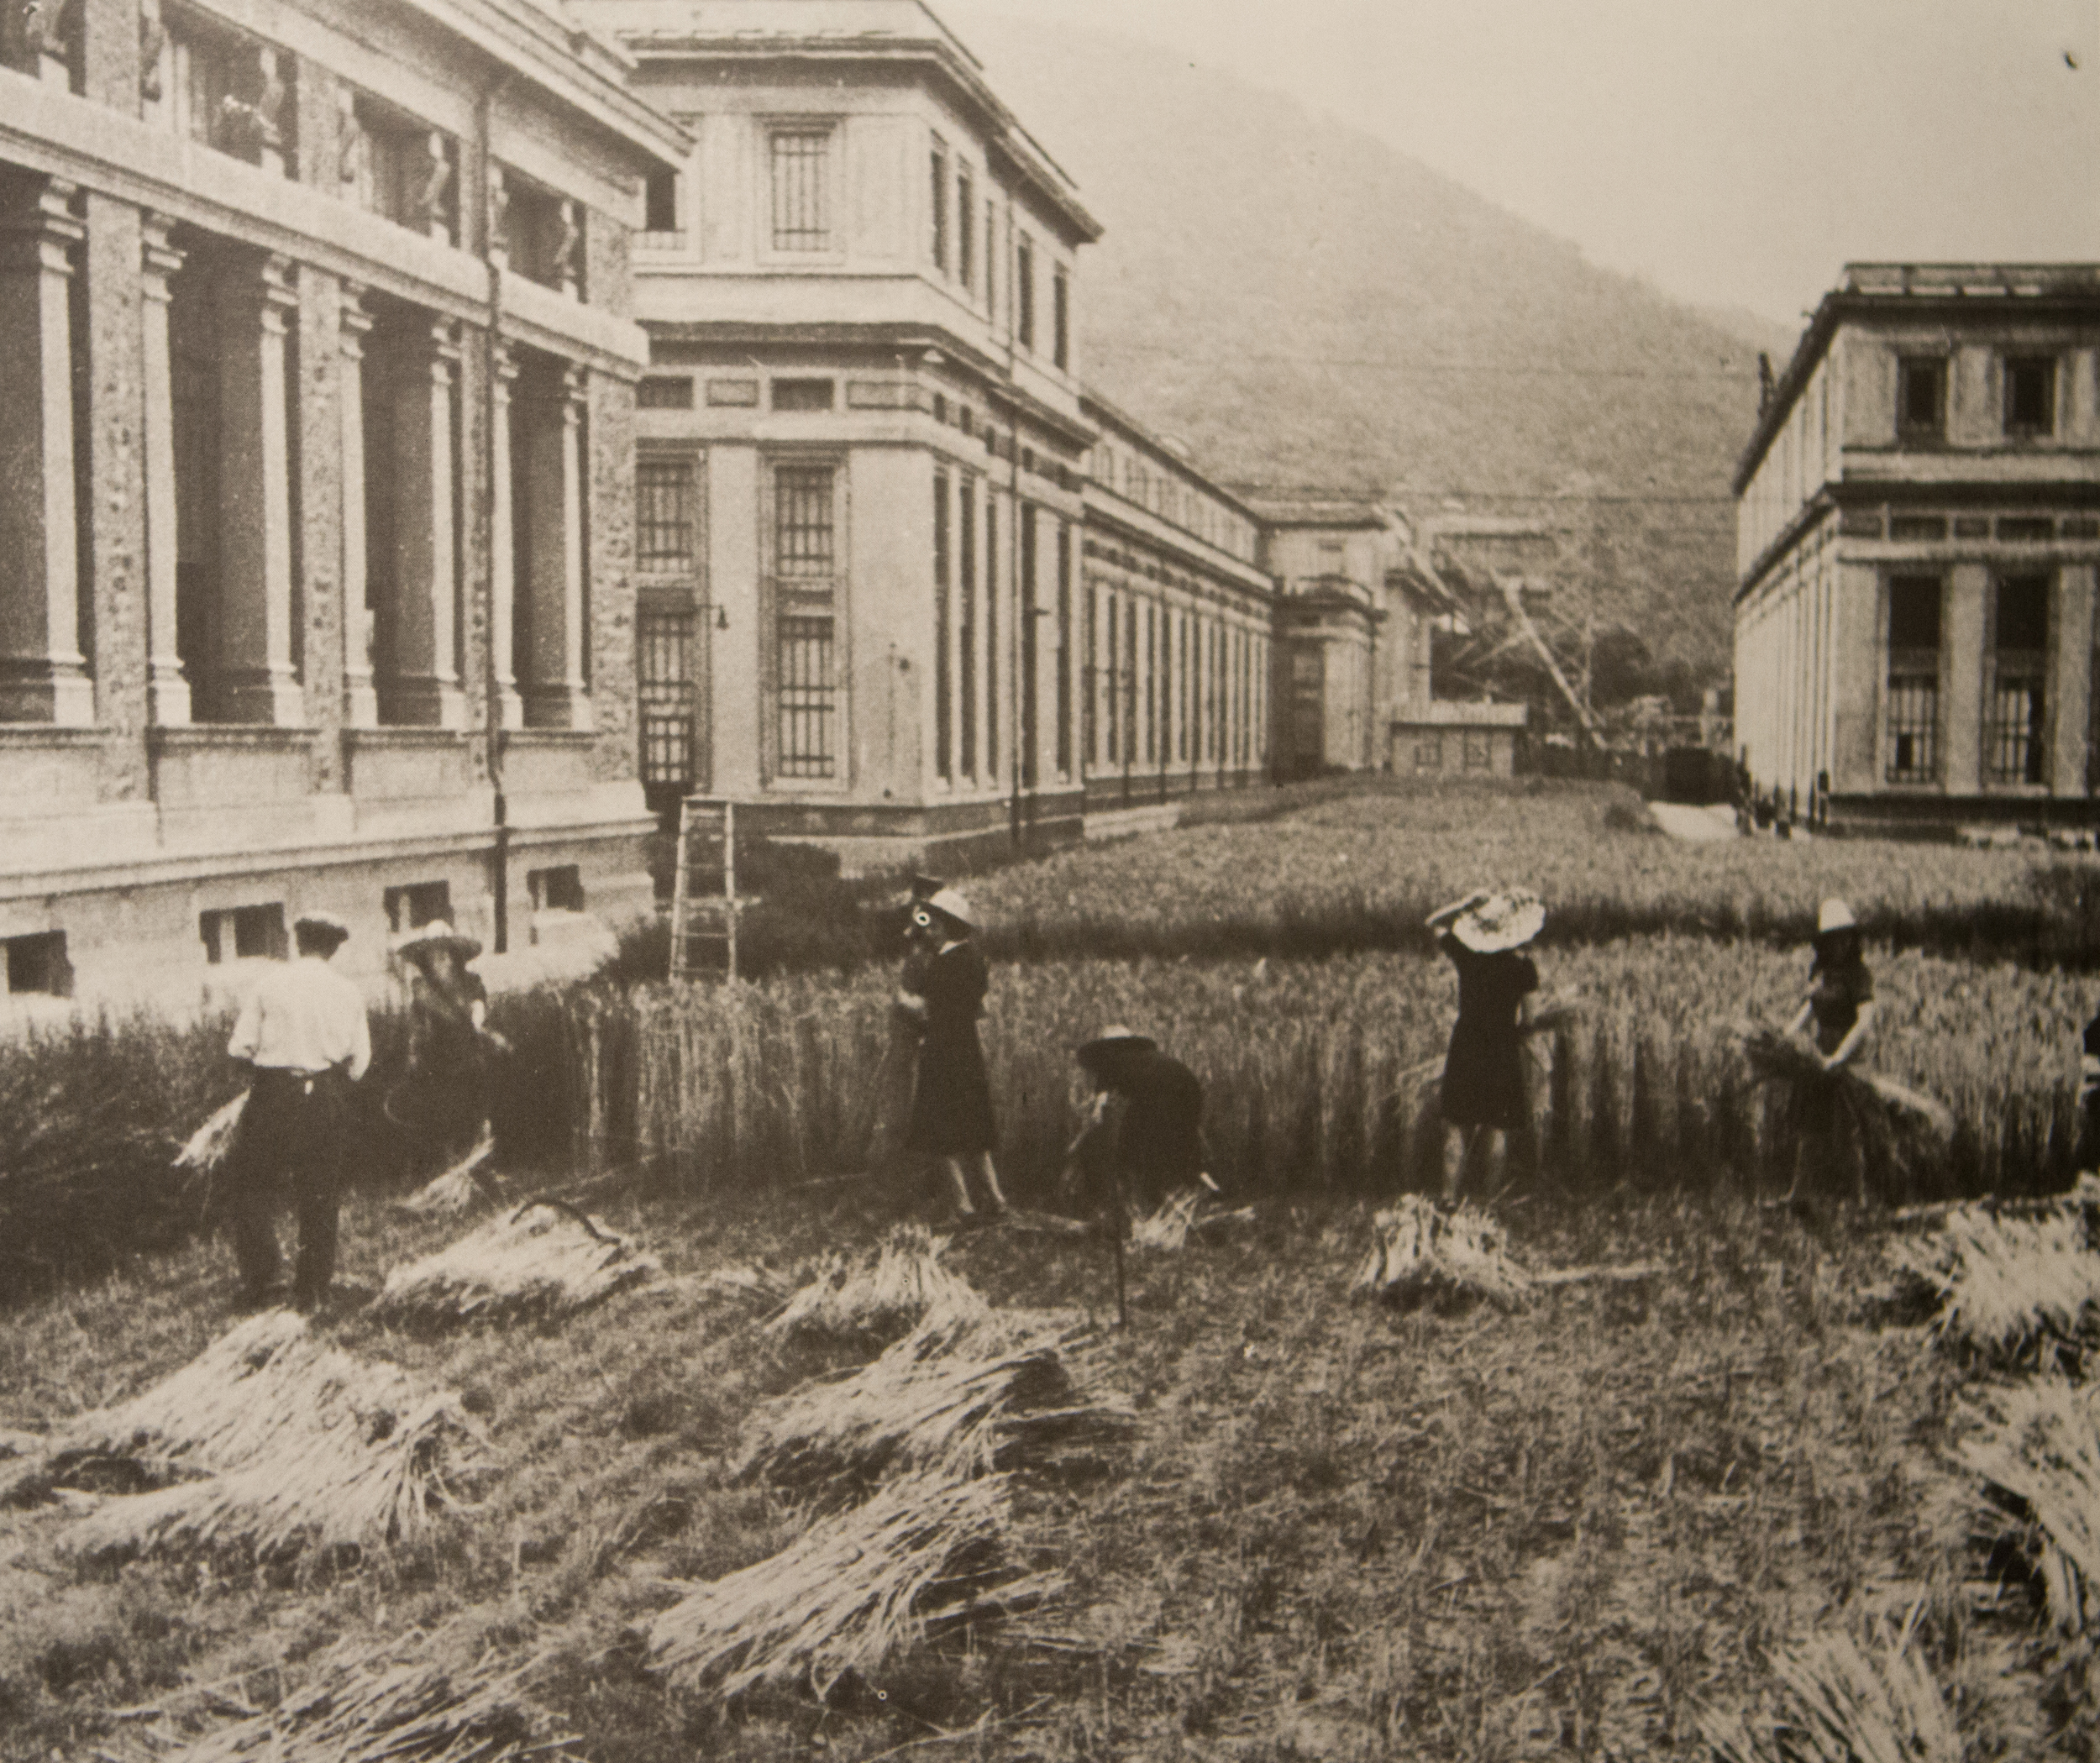 Harvesting grain grown on the grounds of the Ferrania campus in 1939